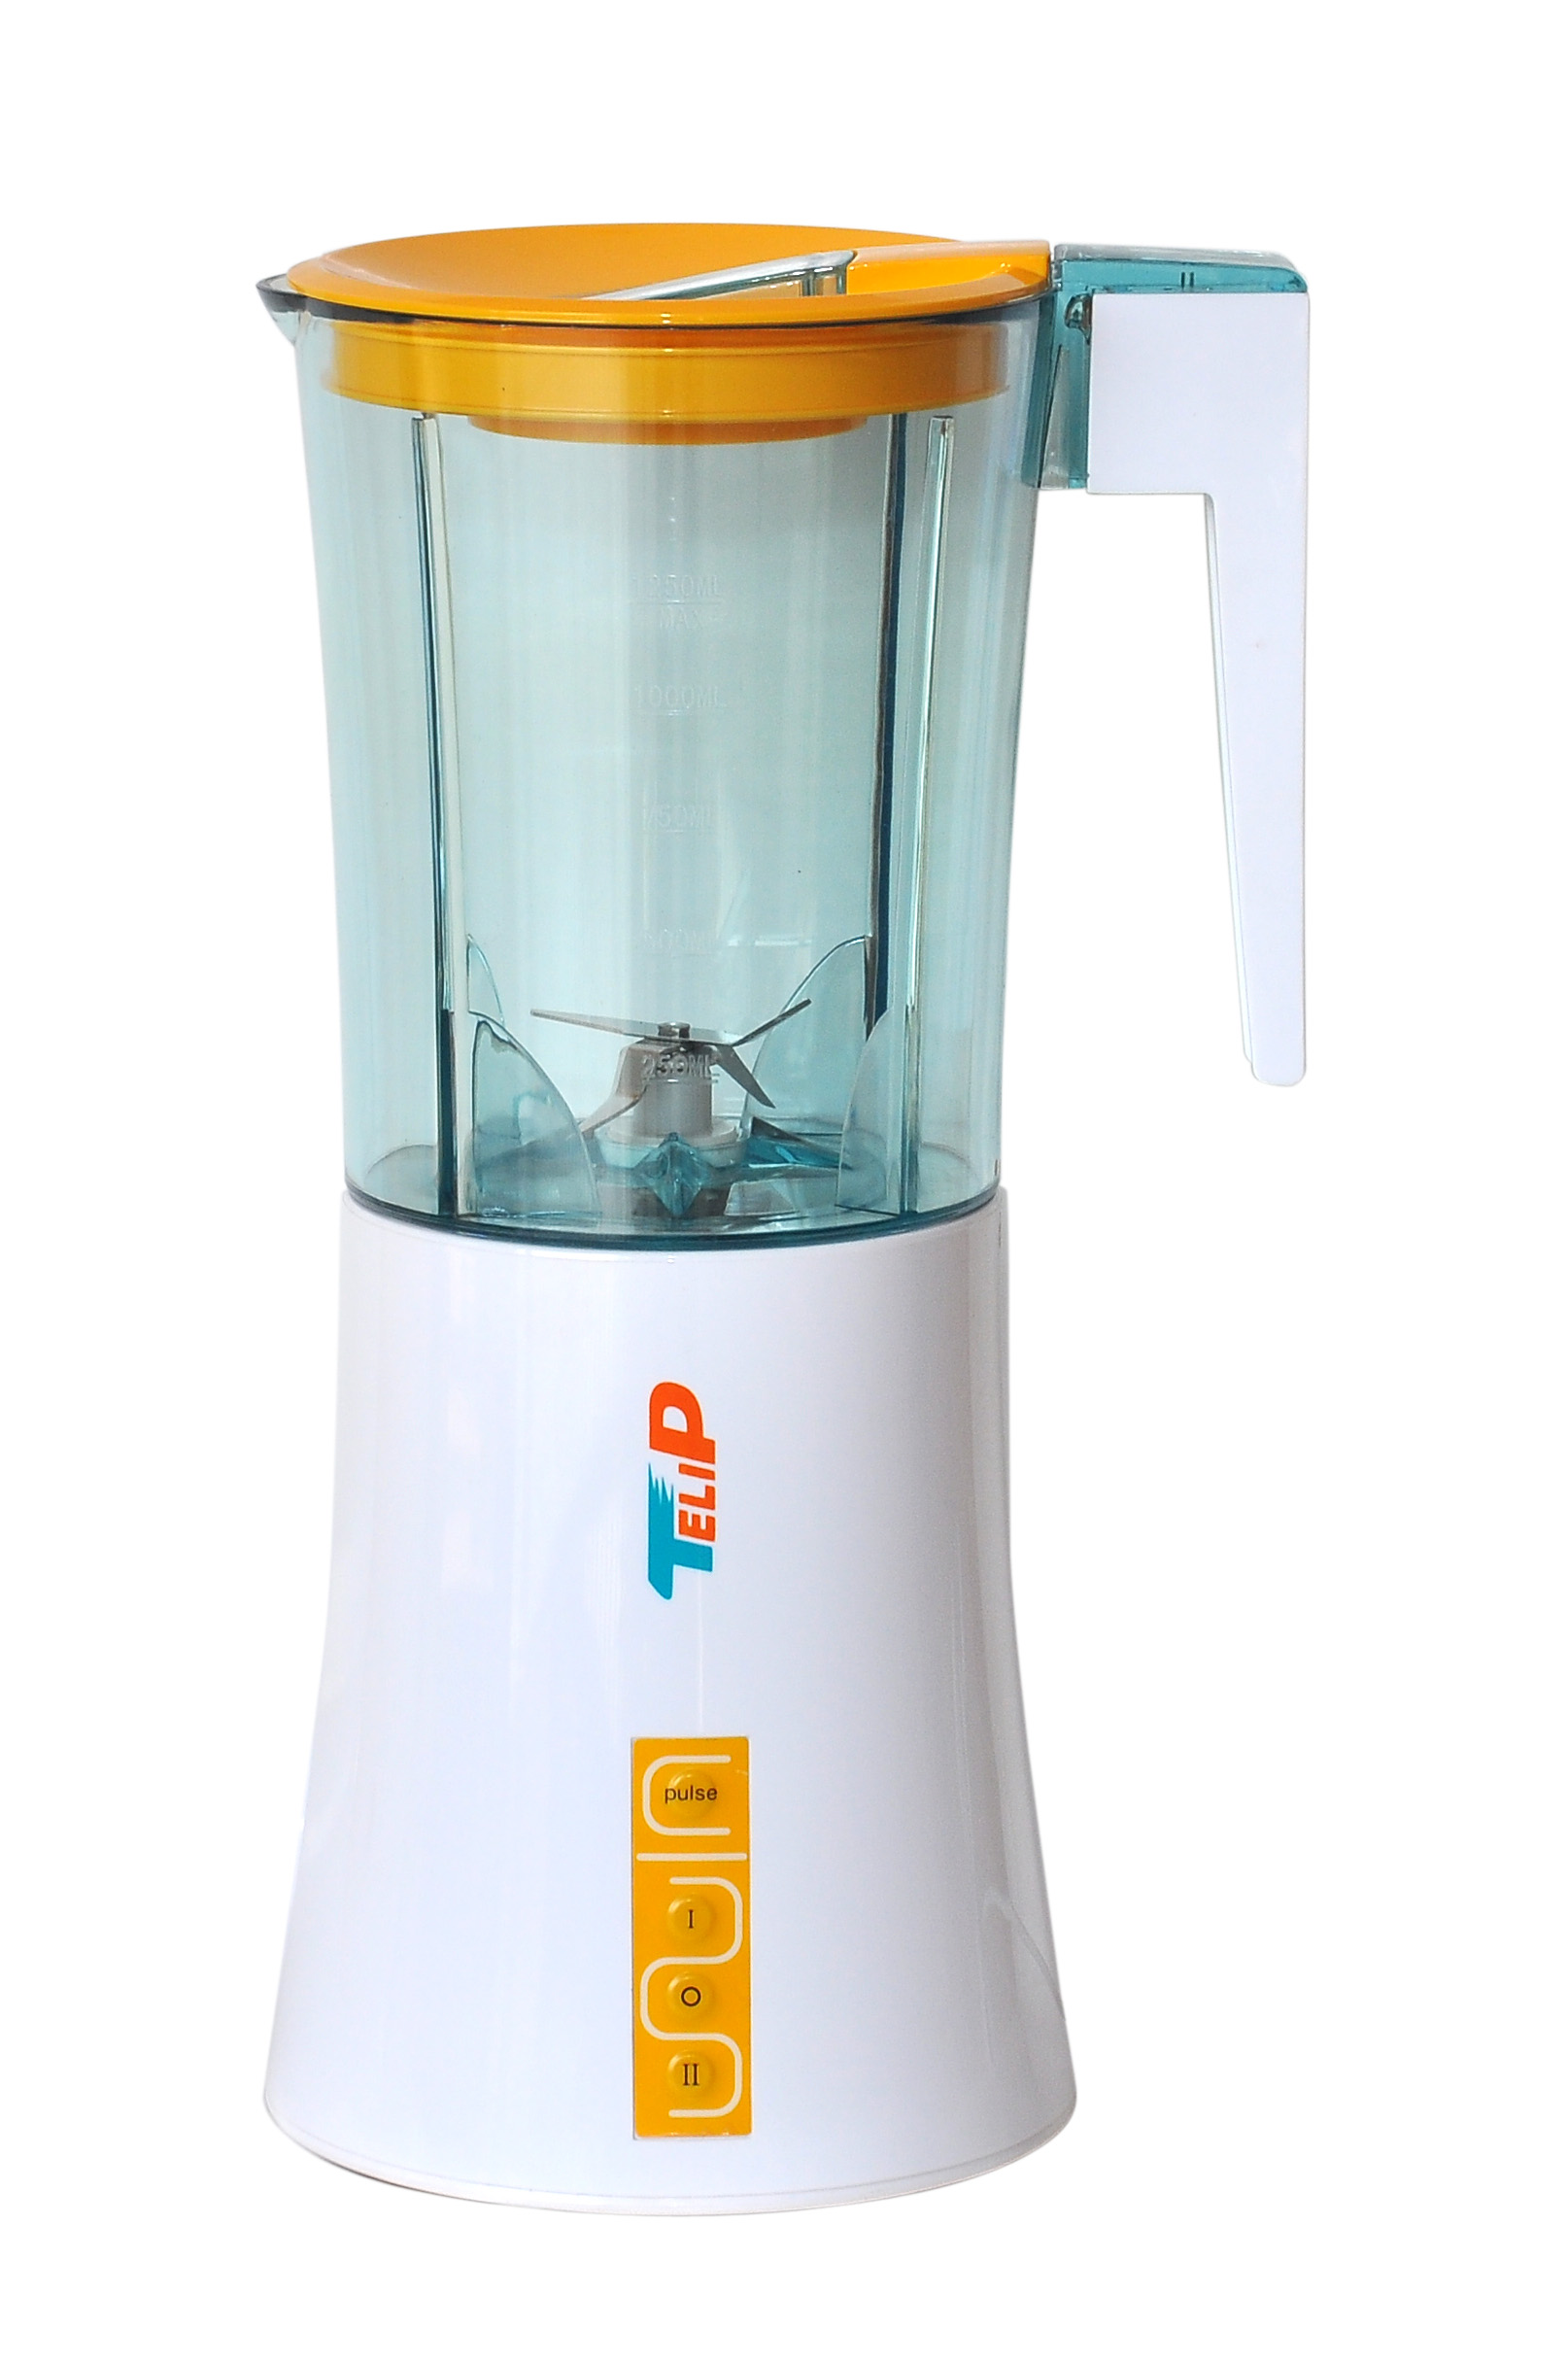 Italy unique design 1250ml powerful blender LED touch panel switch